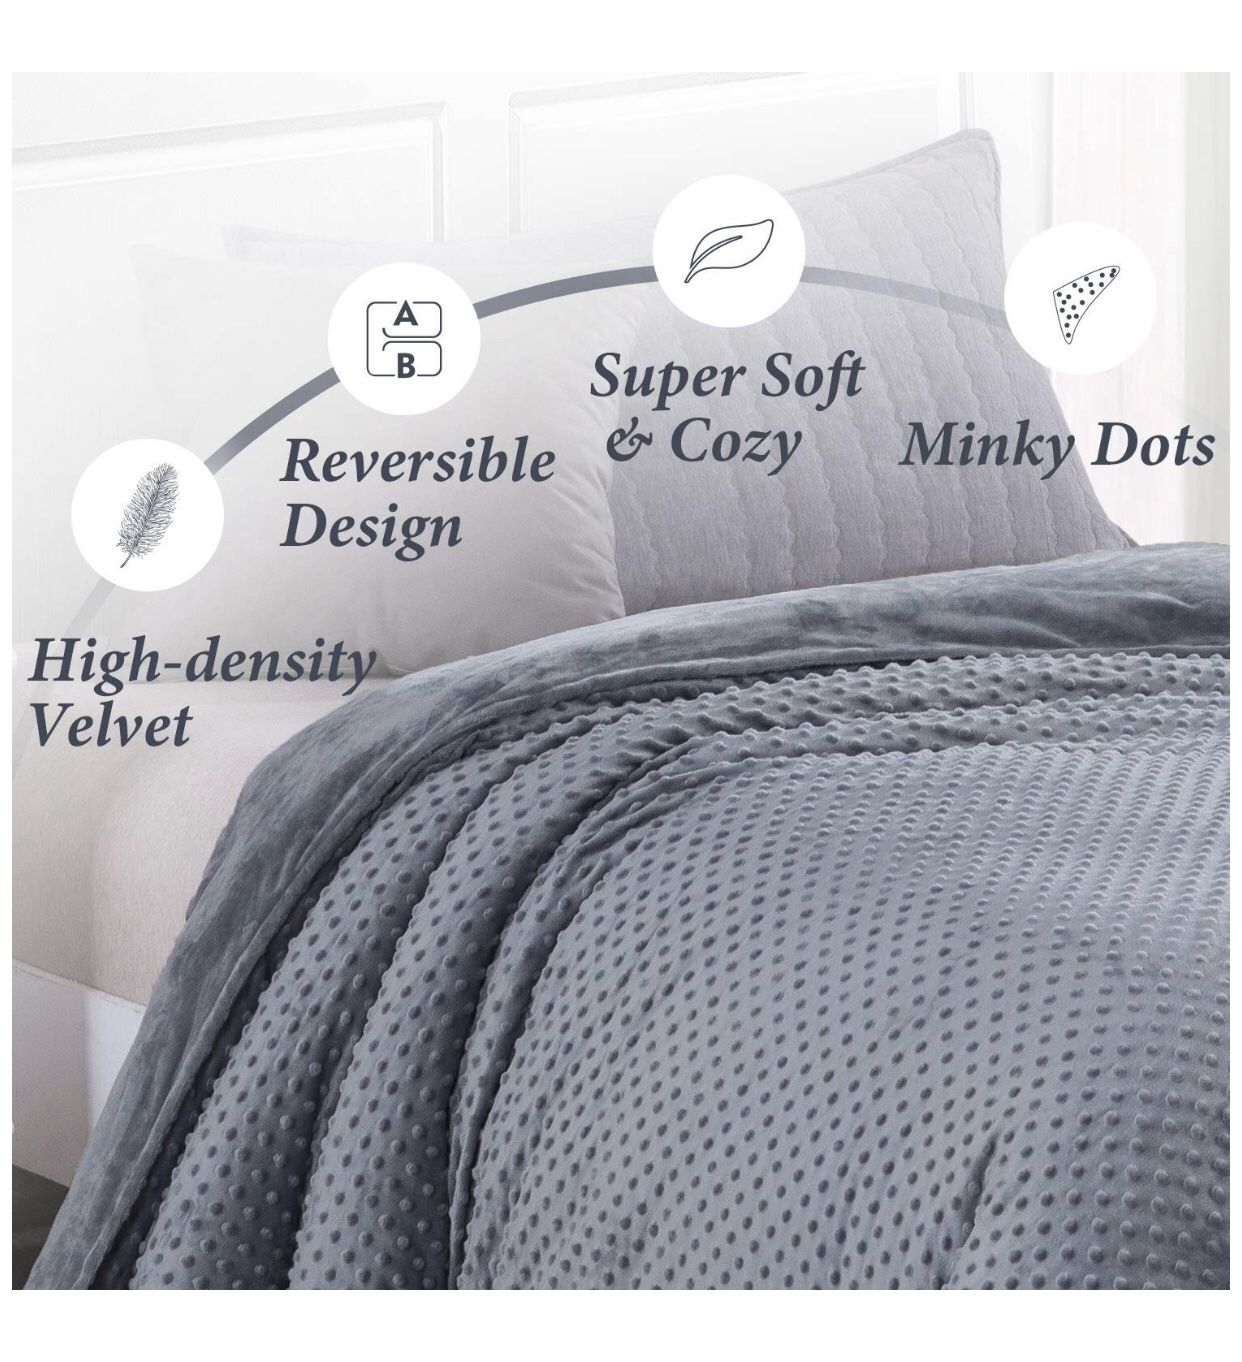 Duvet Cover for Weighted Blankets 48 x 72 Inches - Removable Weighted Blanket Cover - Soft Minky Dot, Gray